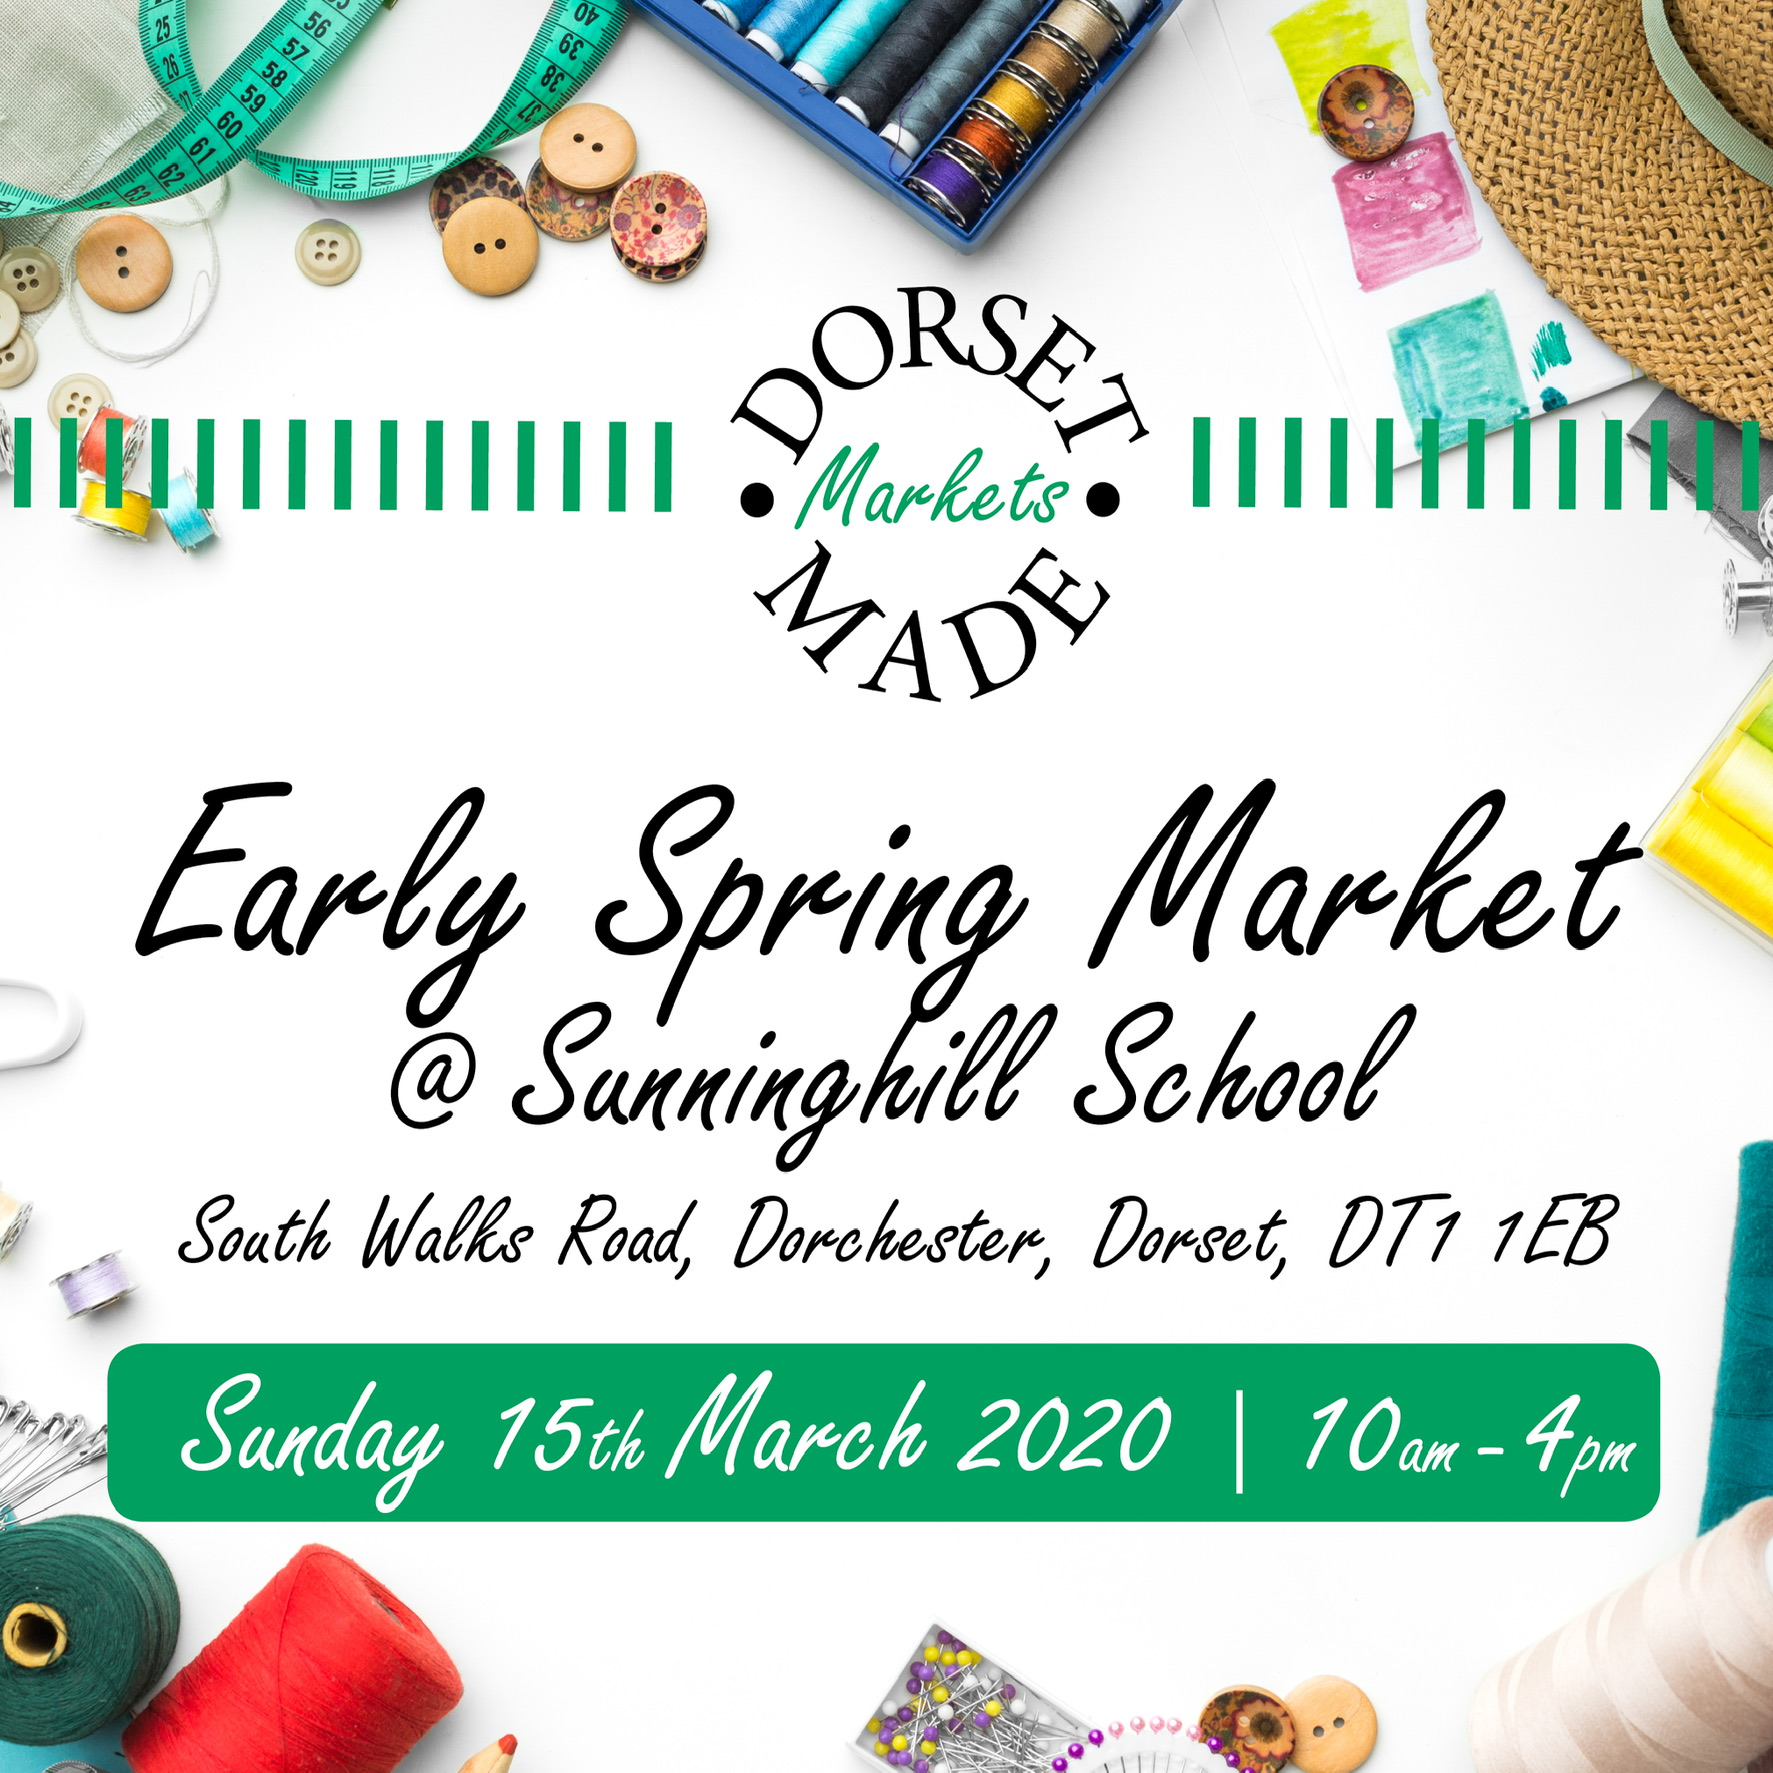 Early Spring Market at Sunninghill School, Dorchester